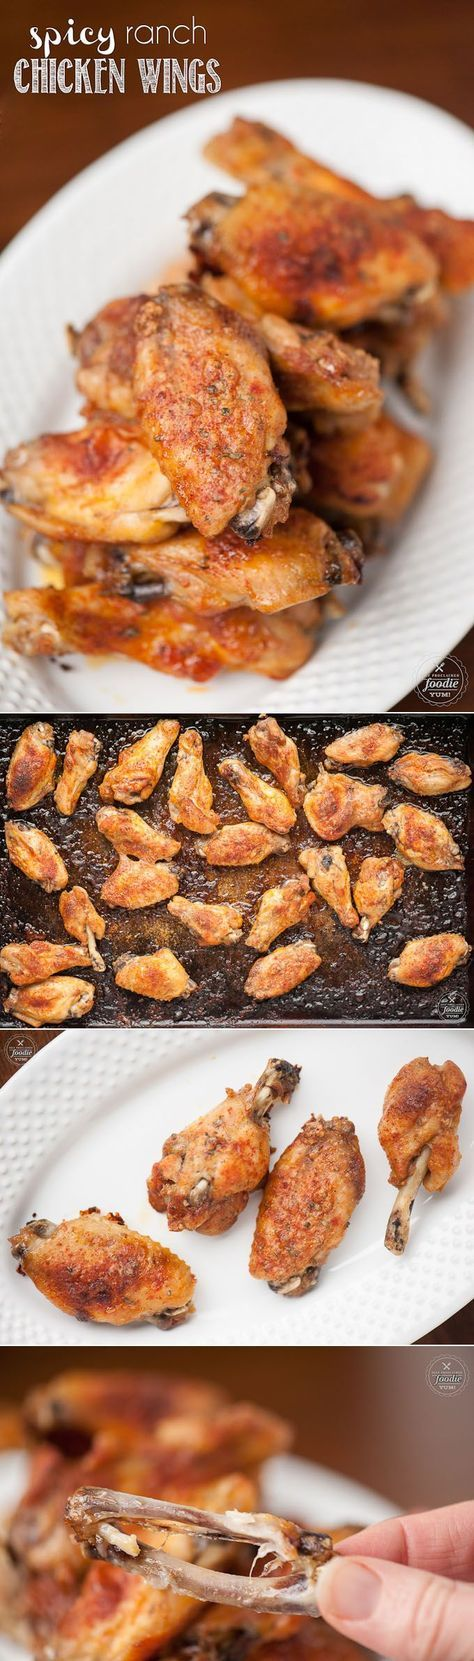 Everyone knows fall off the bone wings are one of the best finger licking game day snacks, and these Spicy Ranch Chicken Wings are fantastic.